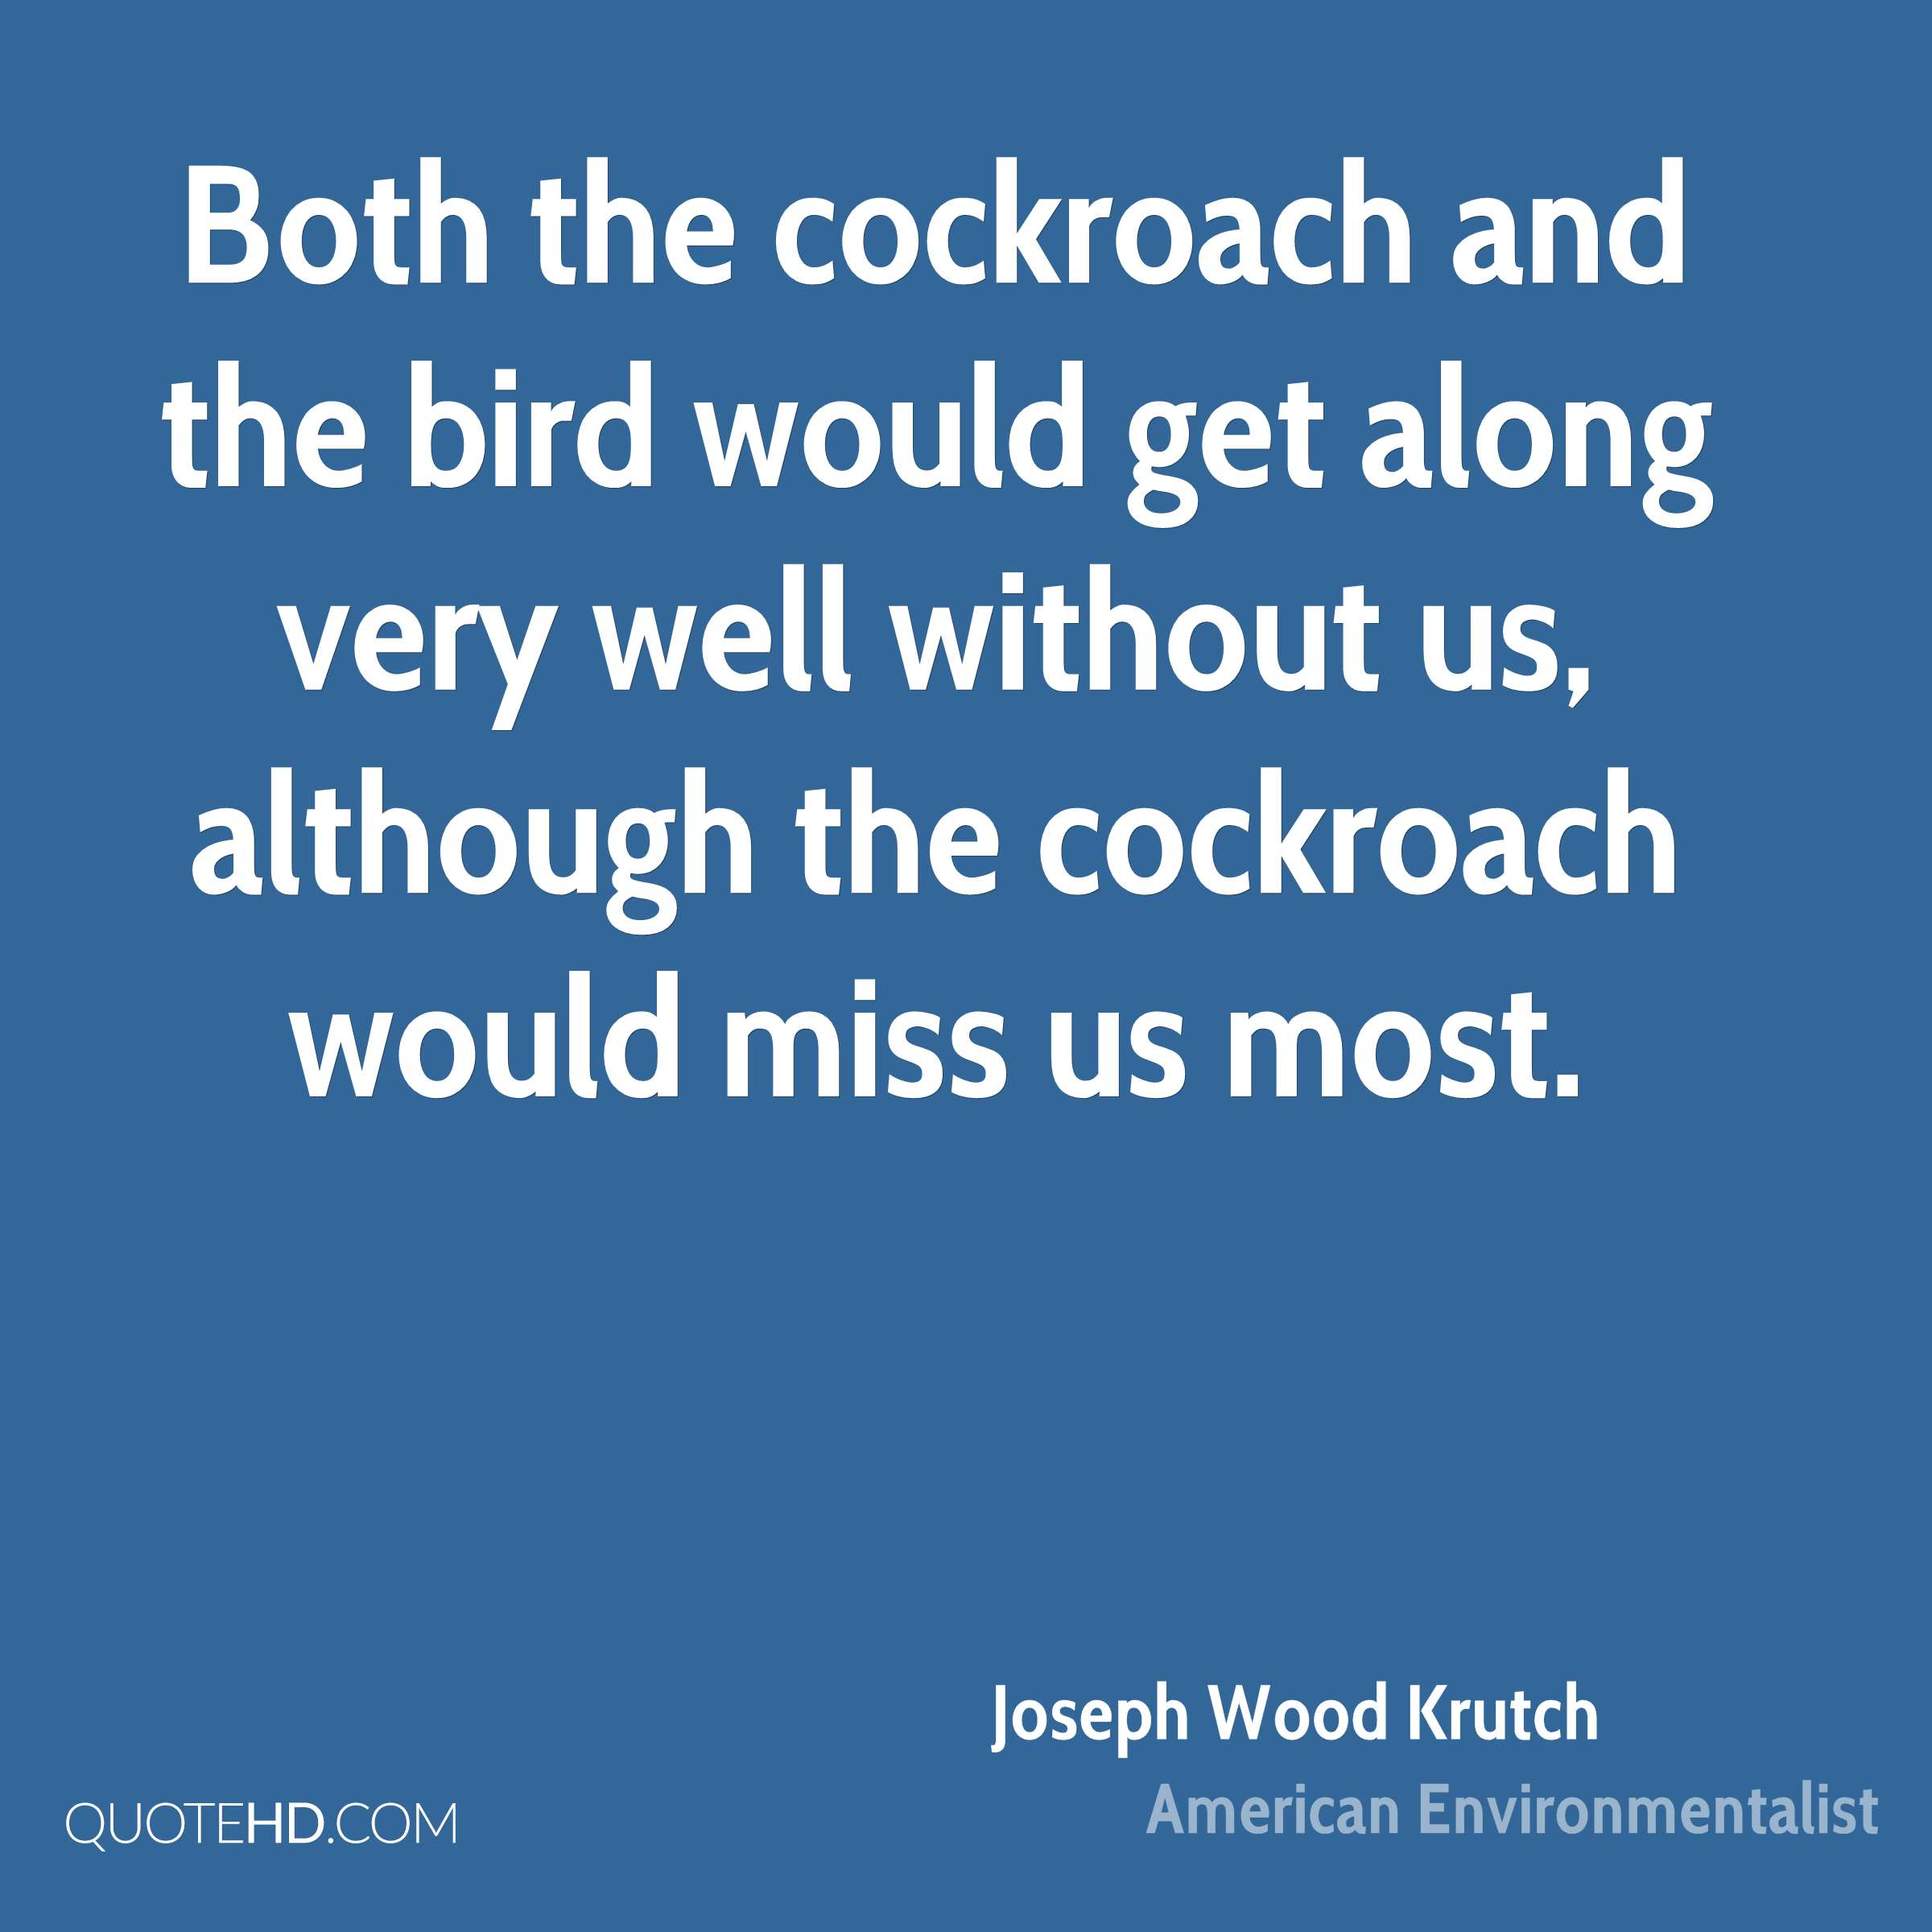 Both the cockroach and the bird would get along very well without us, although the cockroach would miss us most.